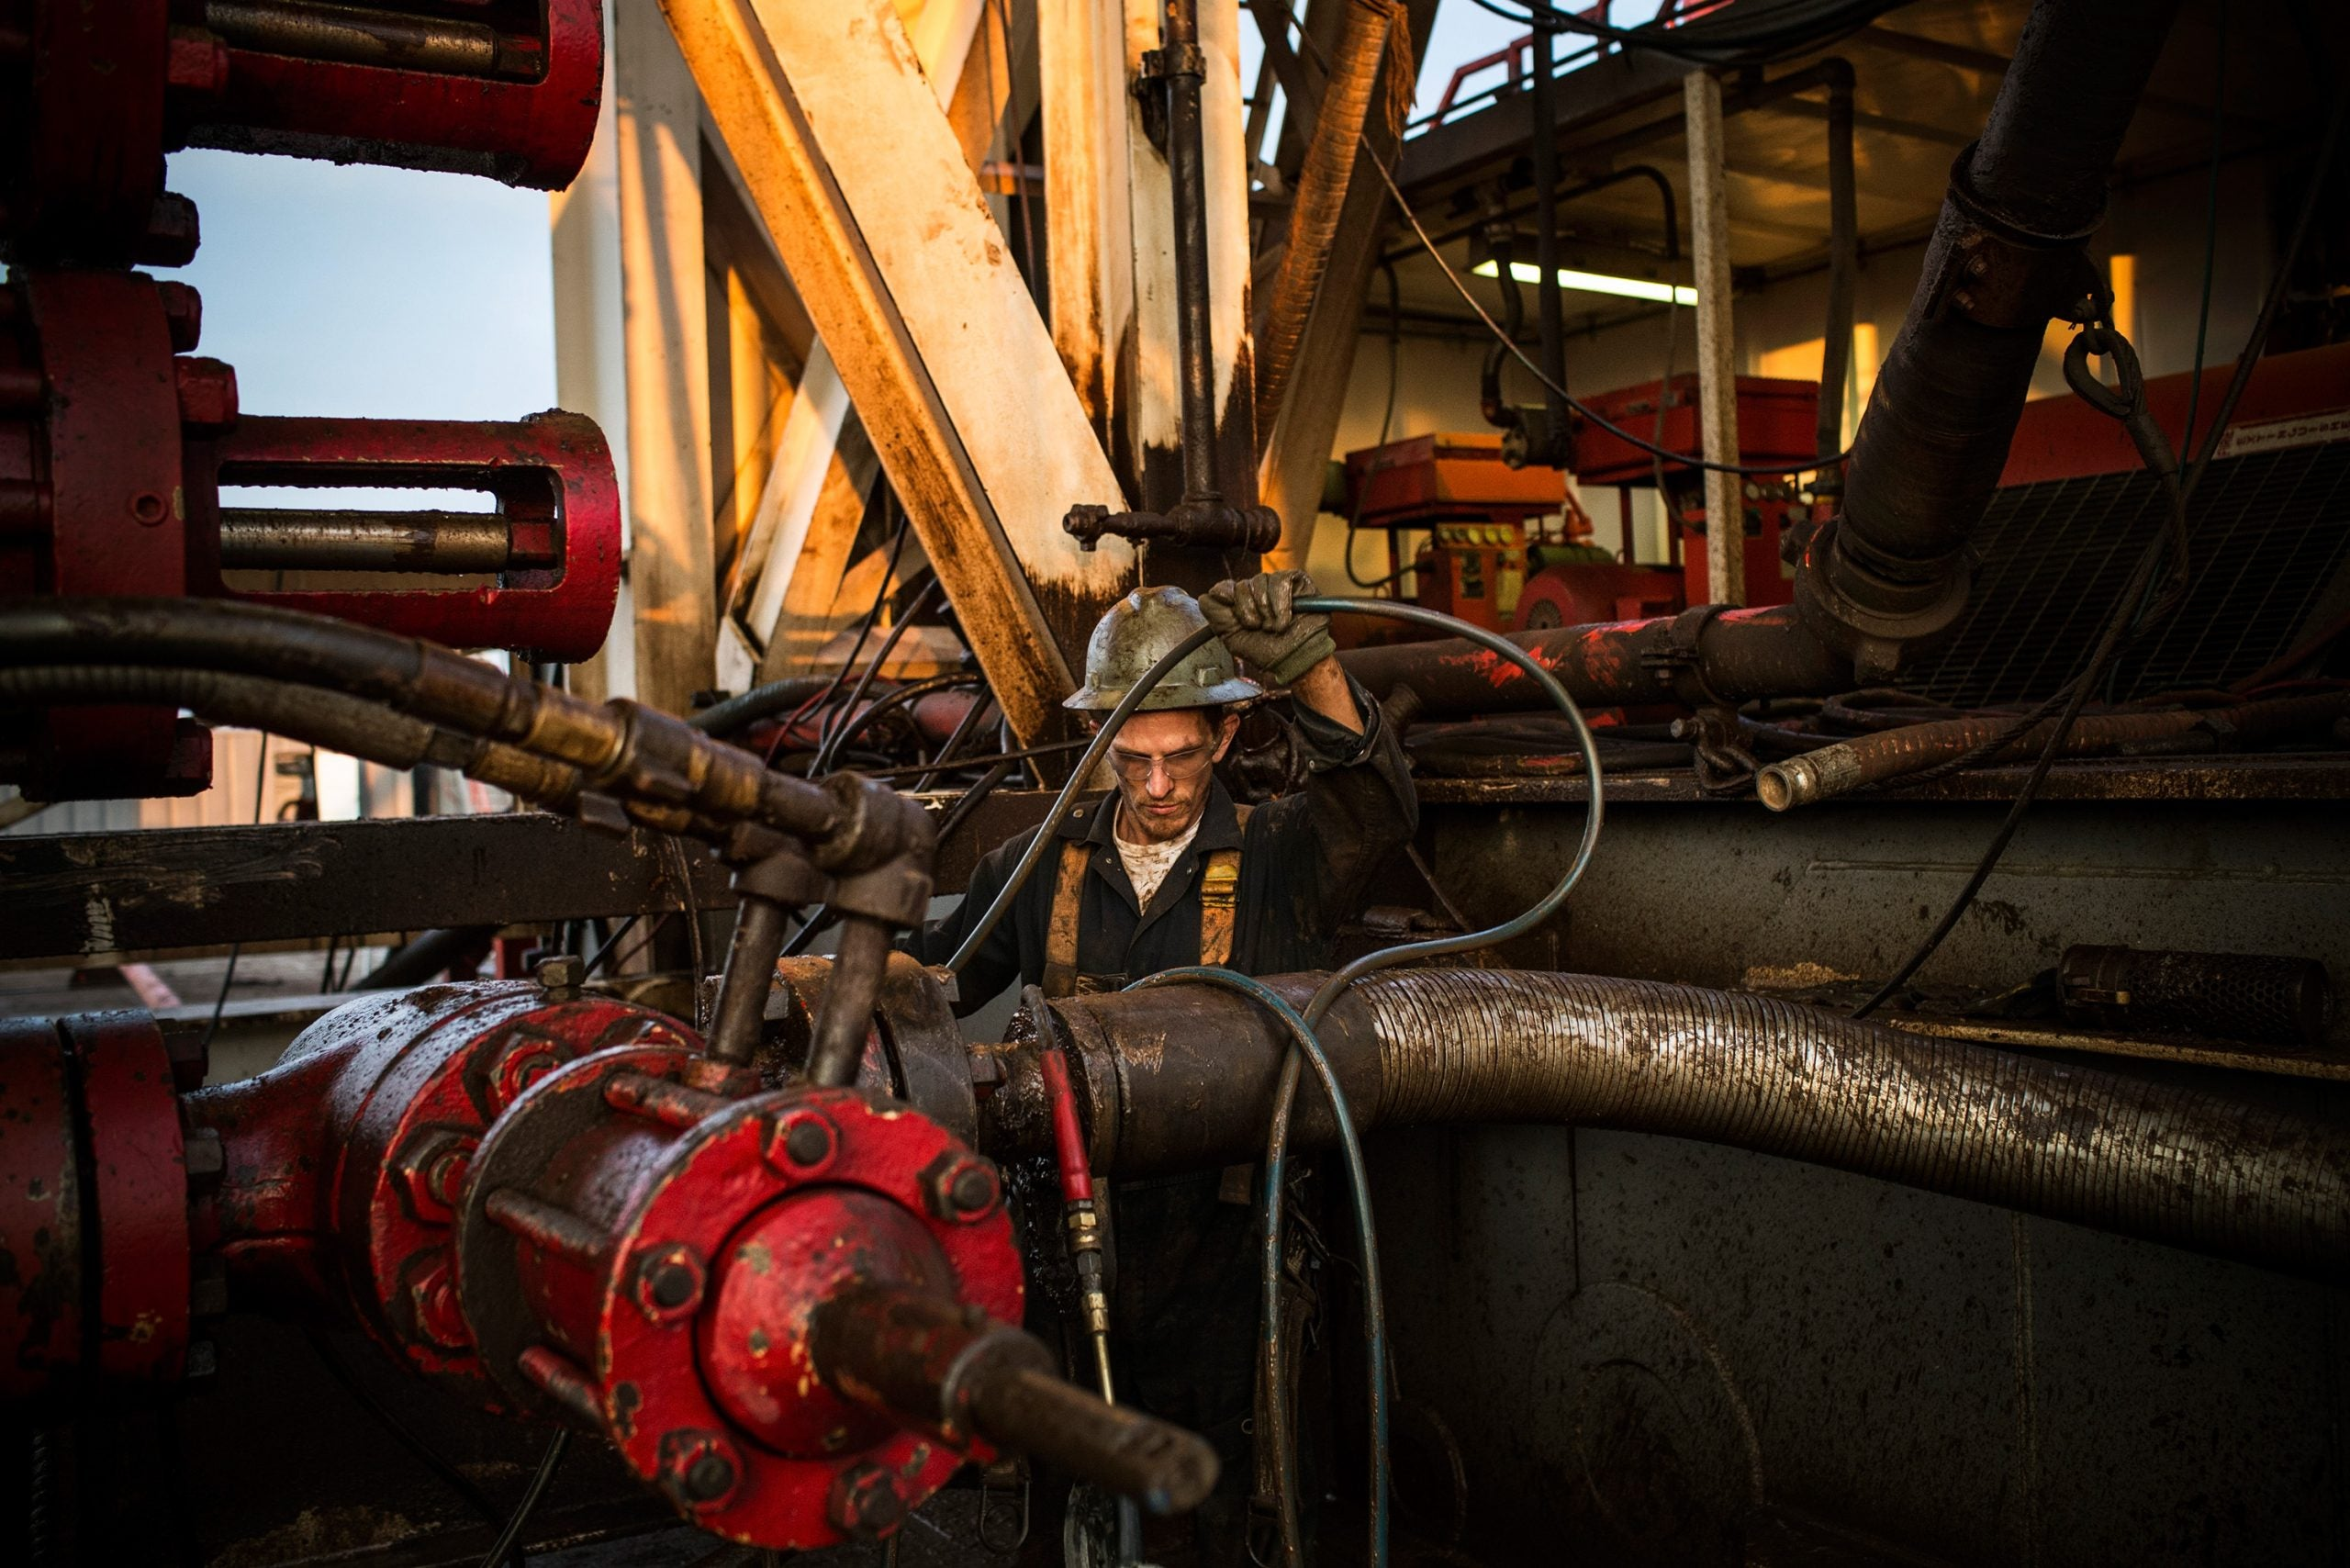 Can America really go green when its oil and gas industry employs ten million people?